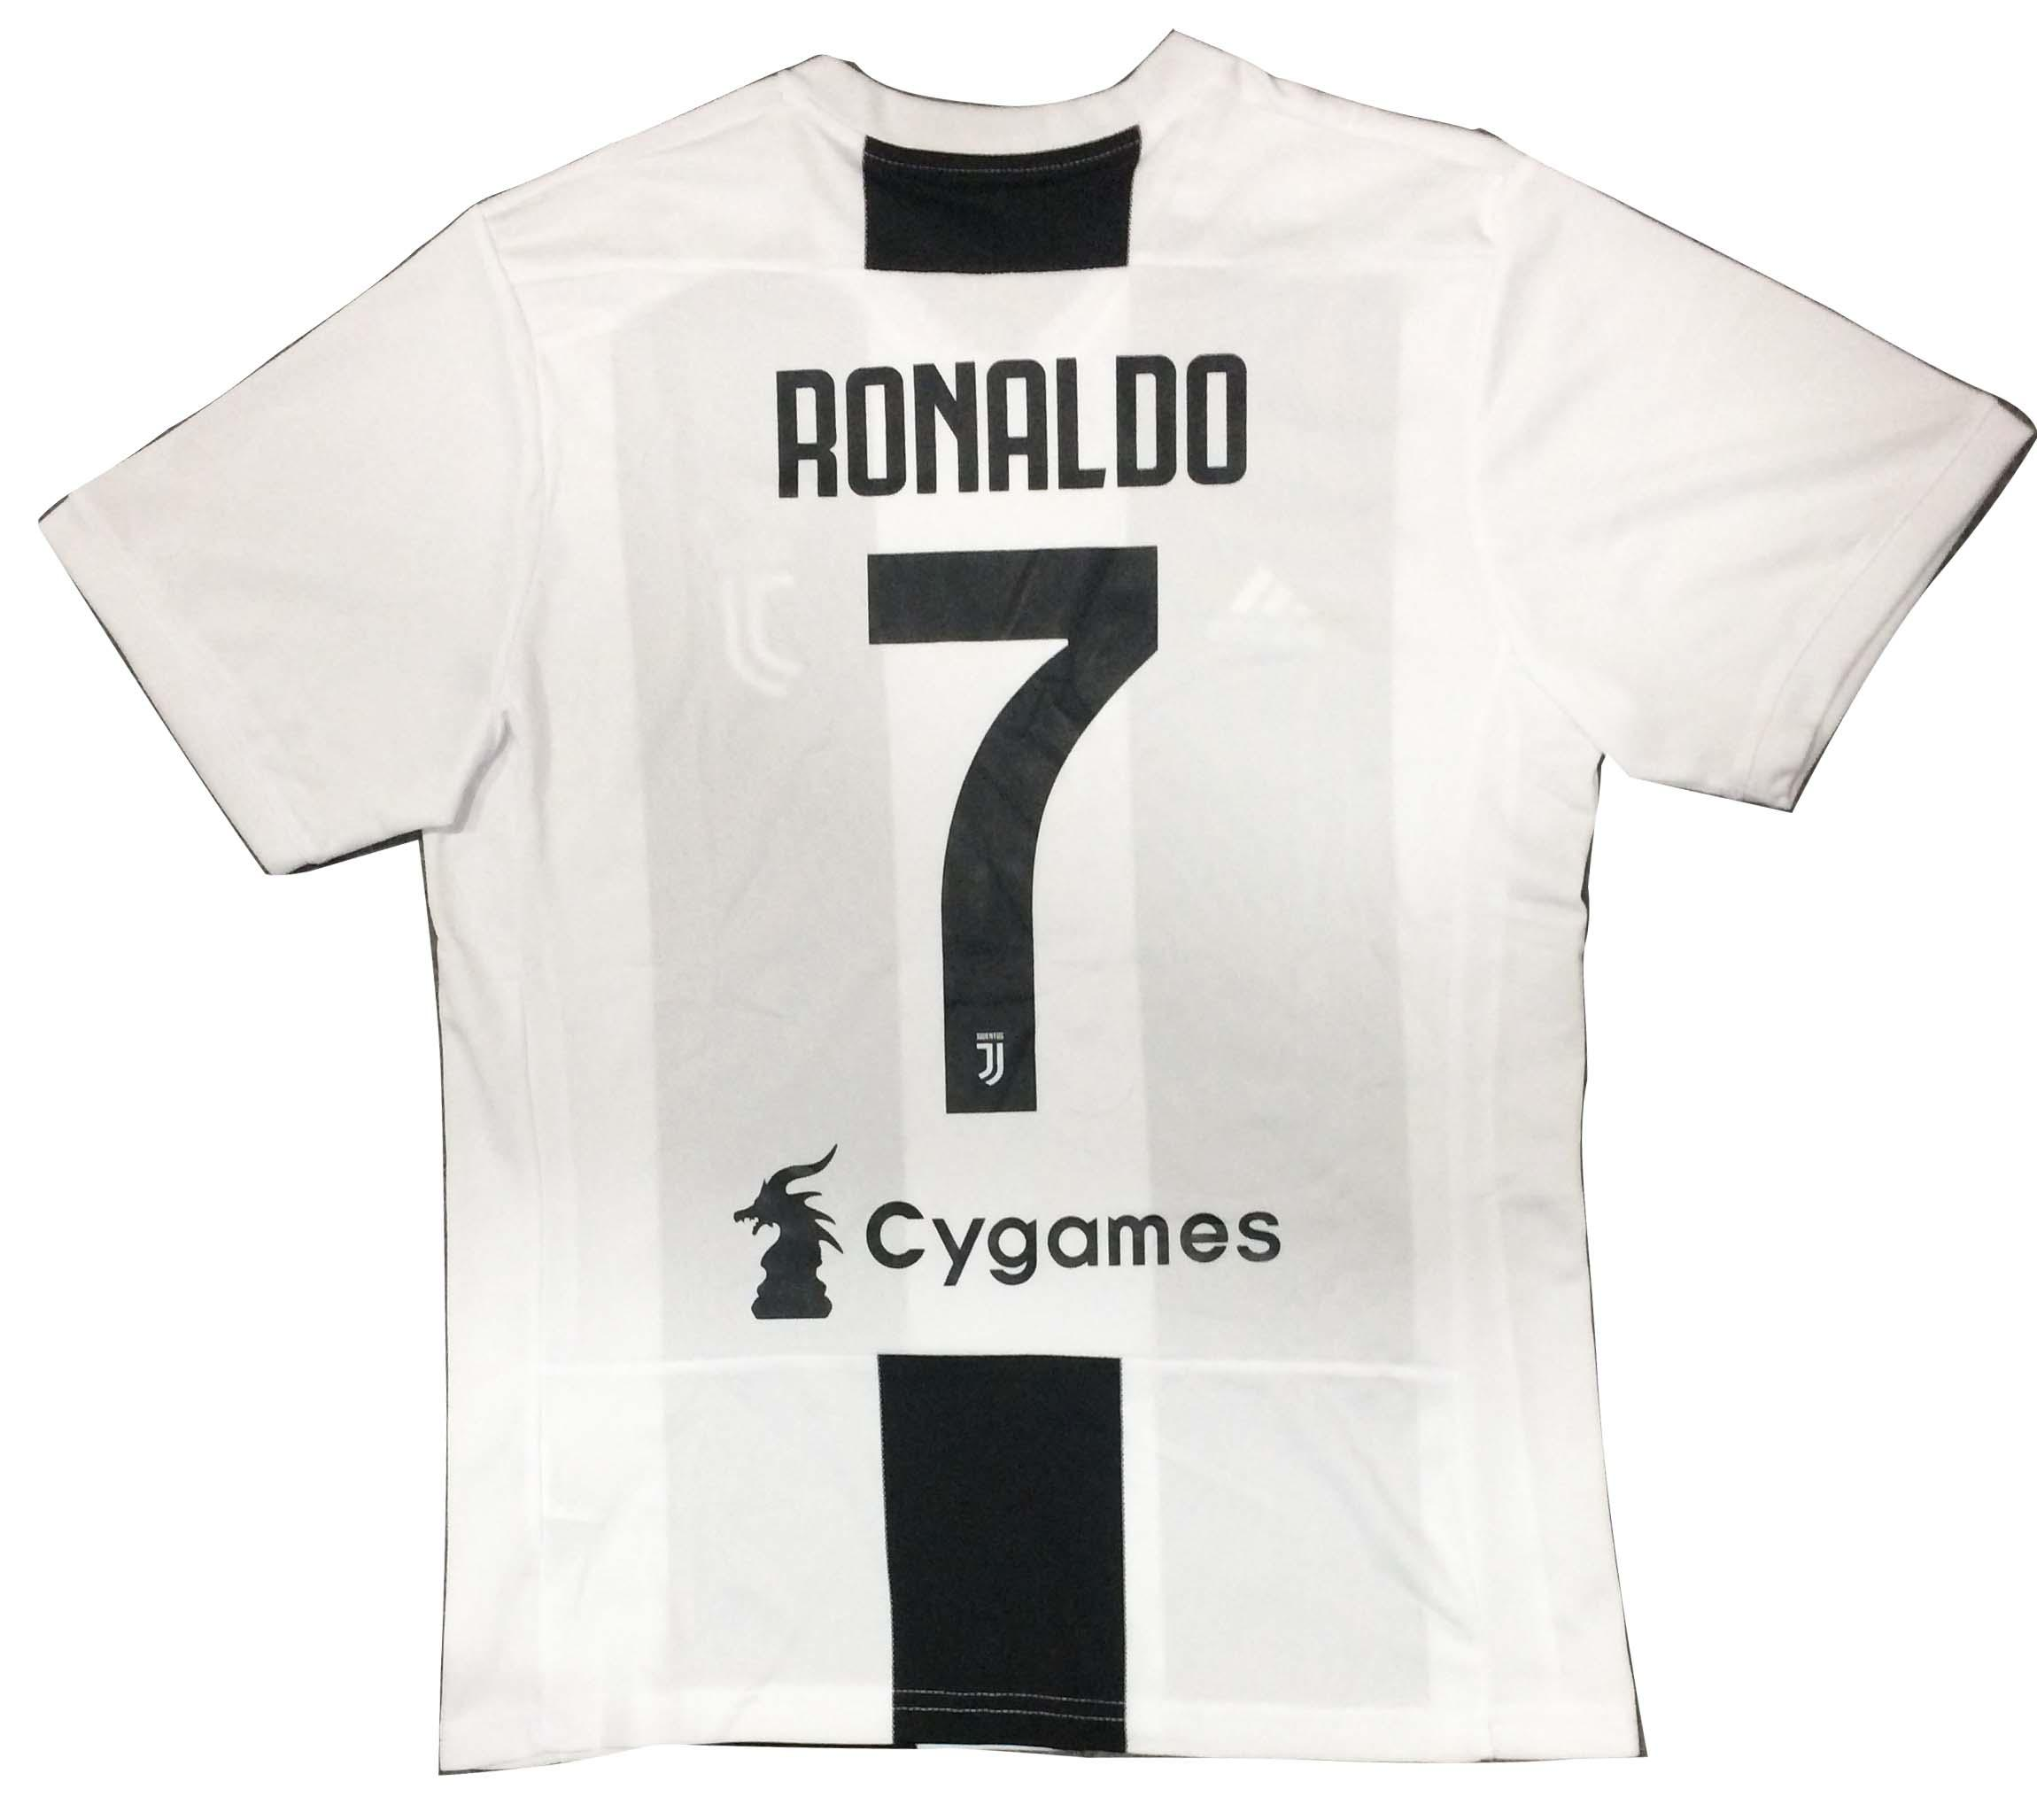 83c80e592 JUVENTUS HOME PLAYER JERSEY 2018 19 (WITH ORIGINAL RONALDO NAME AT BACK) -